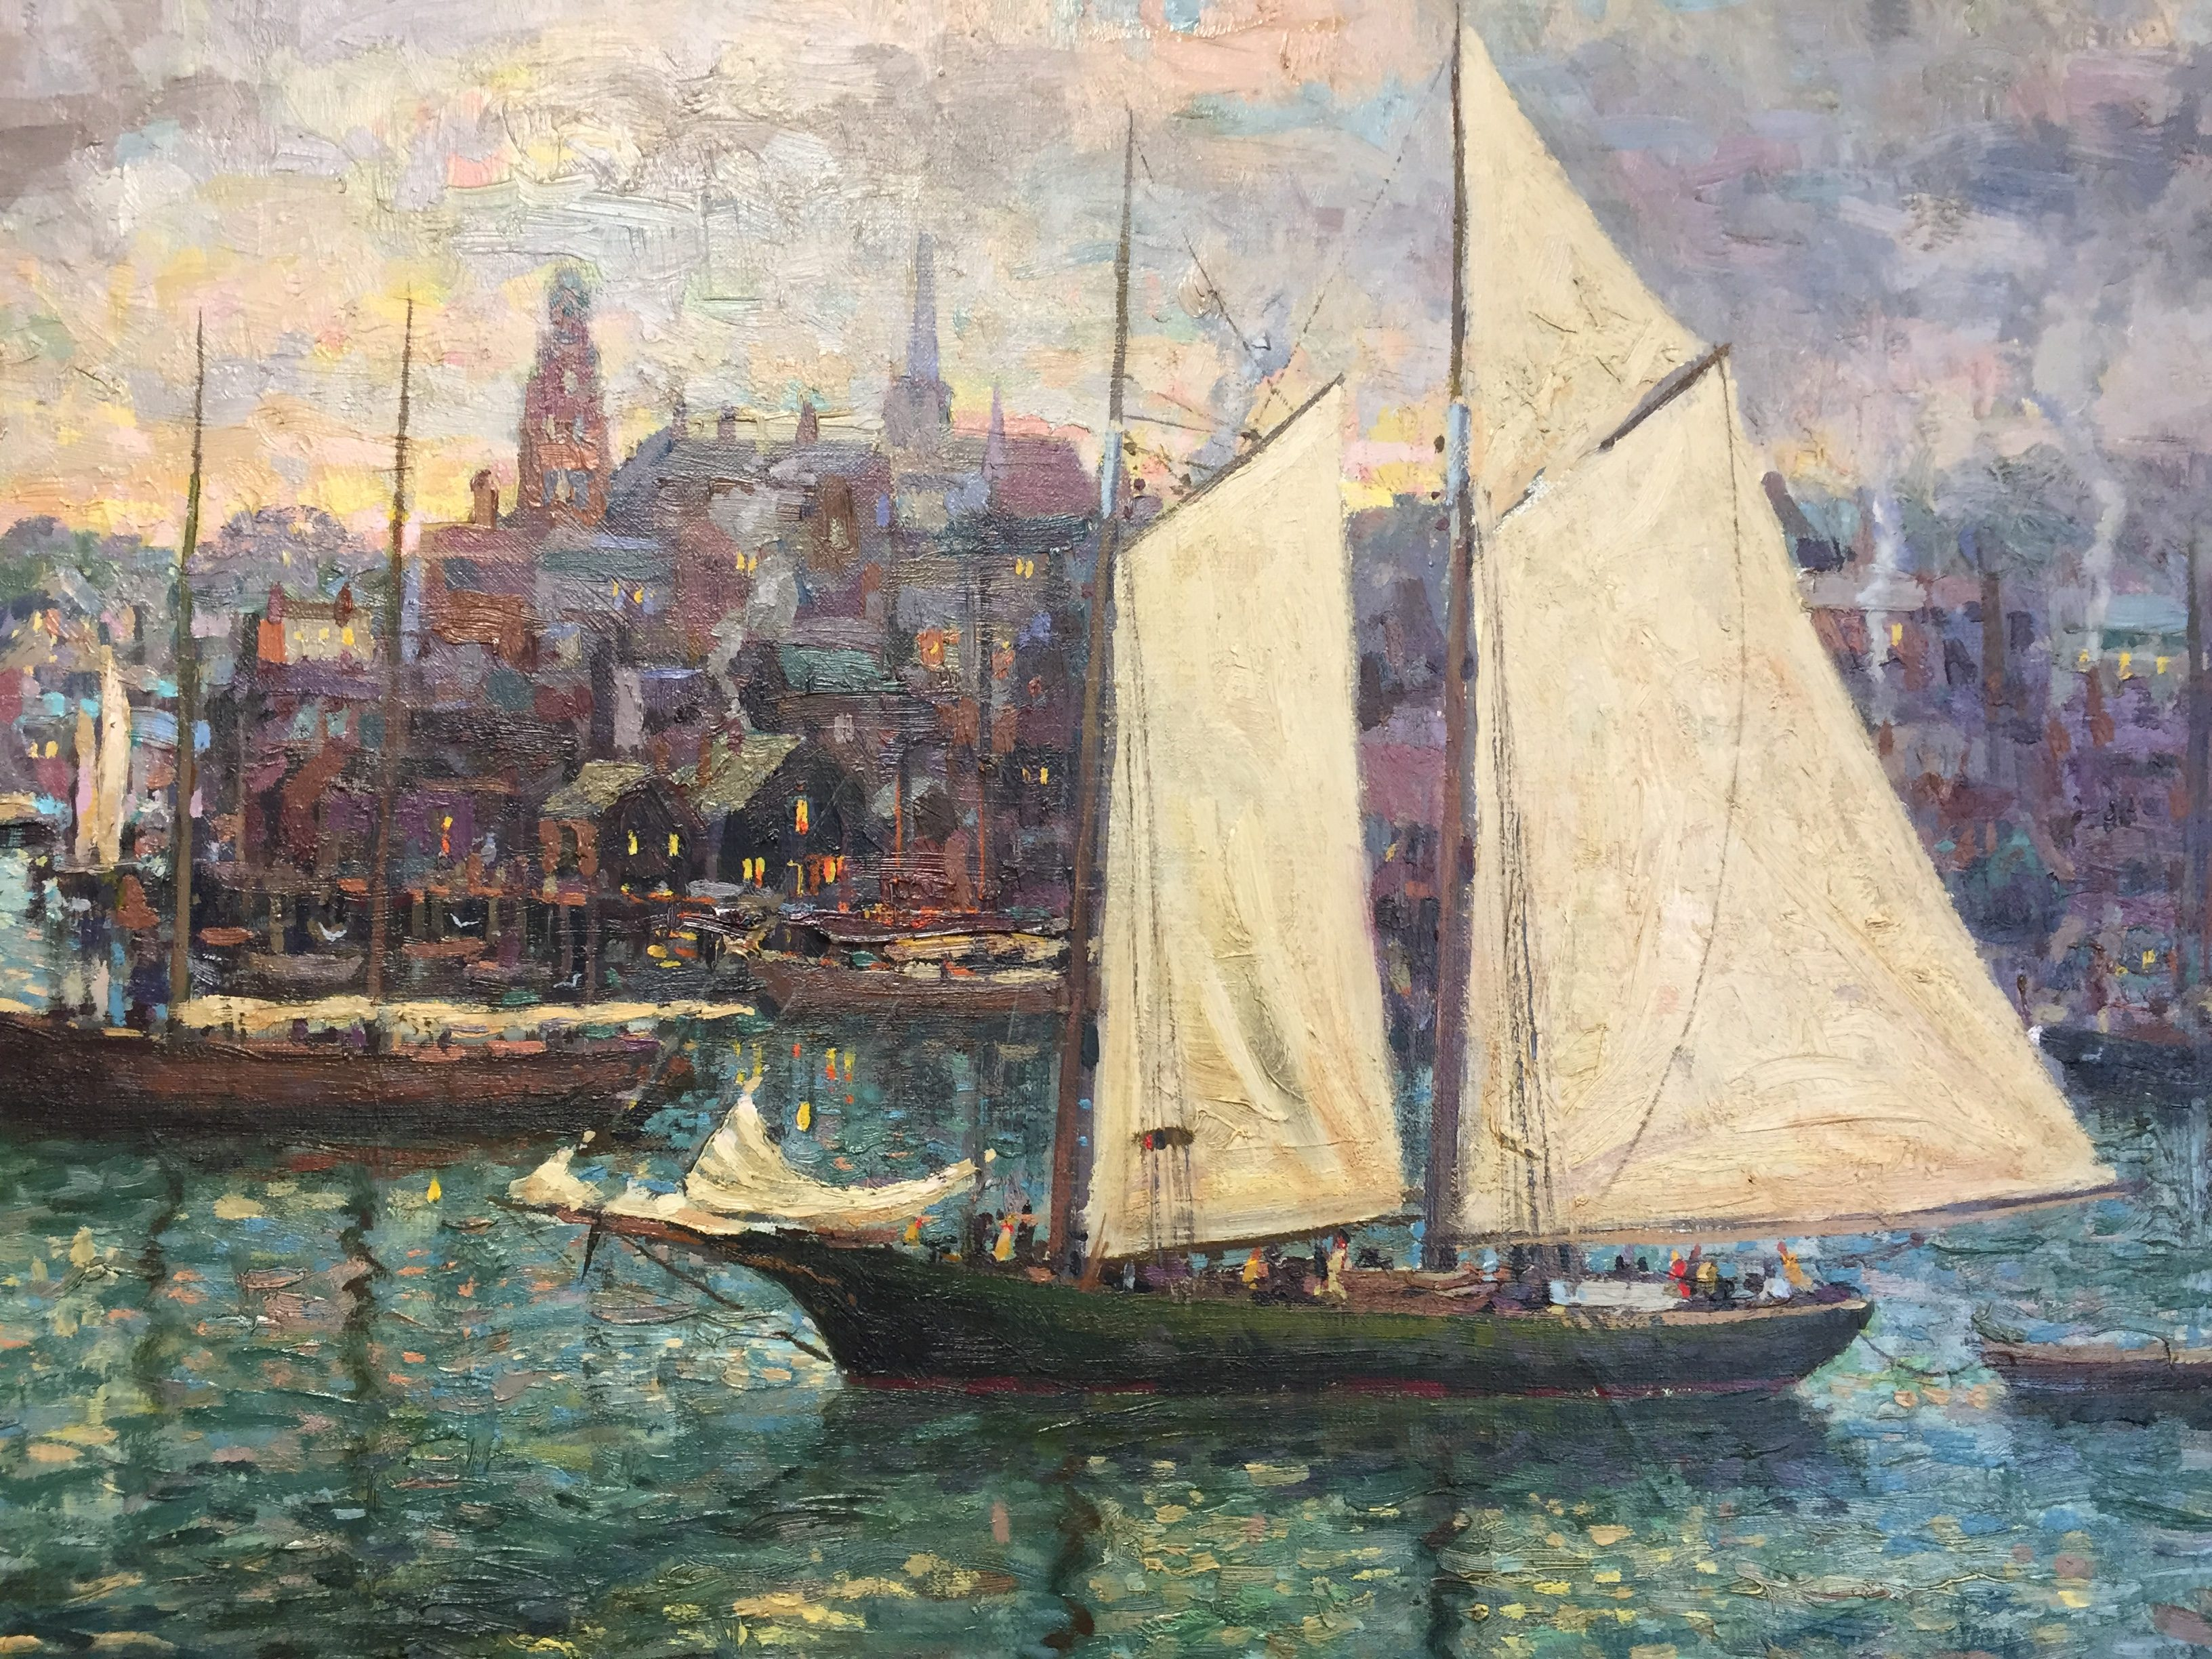 Traditonal painting of Gloucester Harbor done by artist Donald Allen Mosher